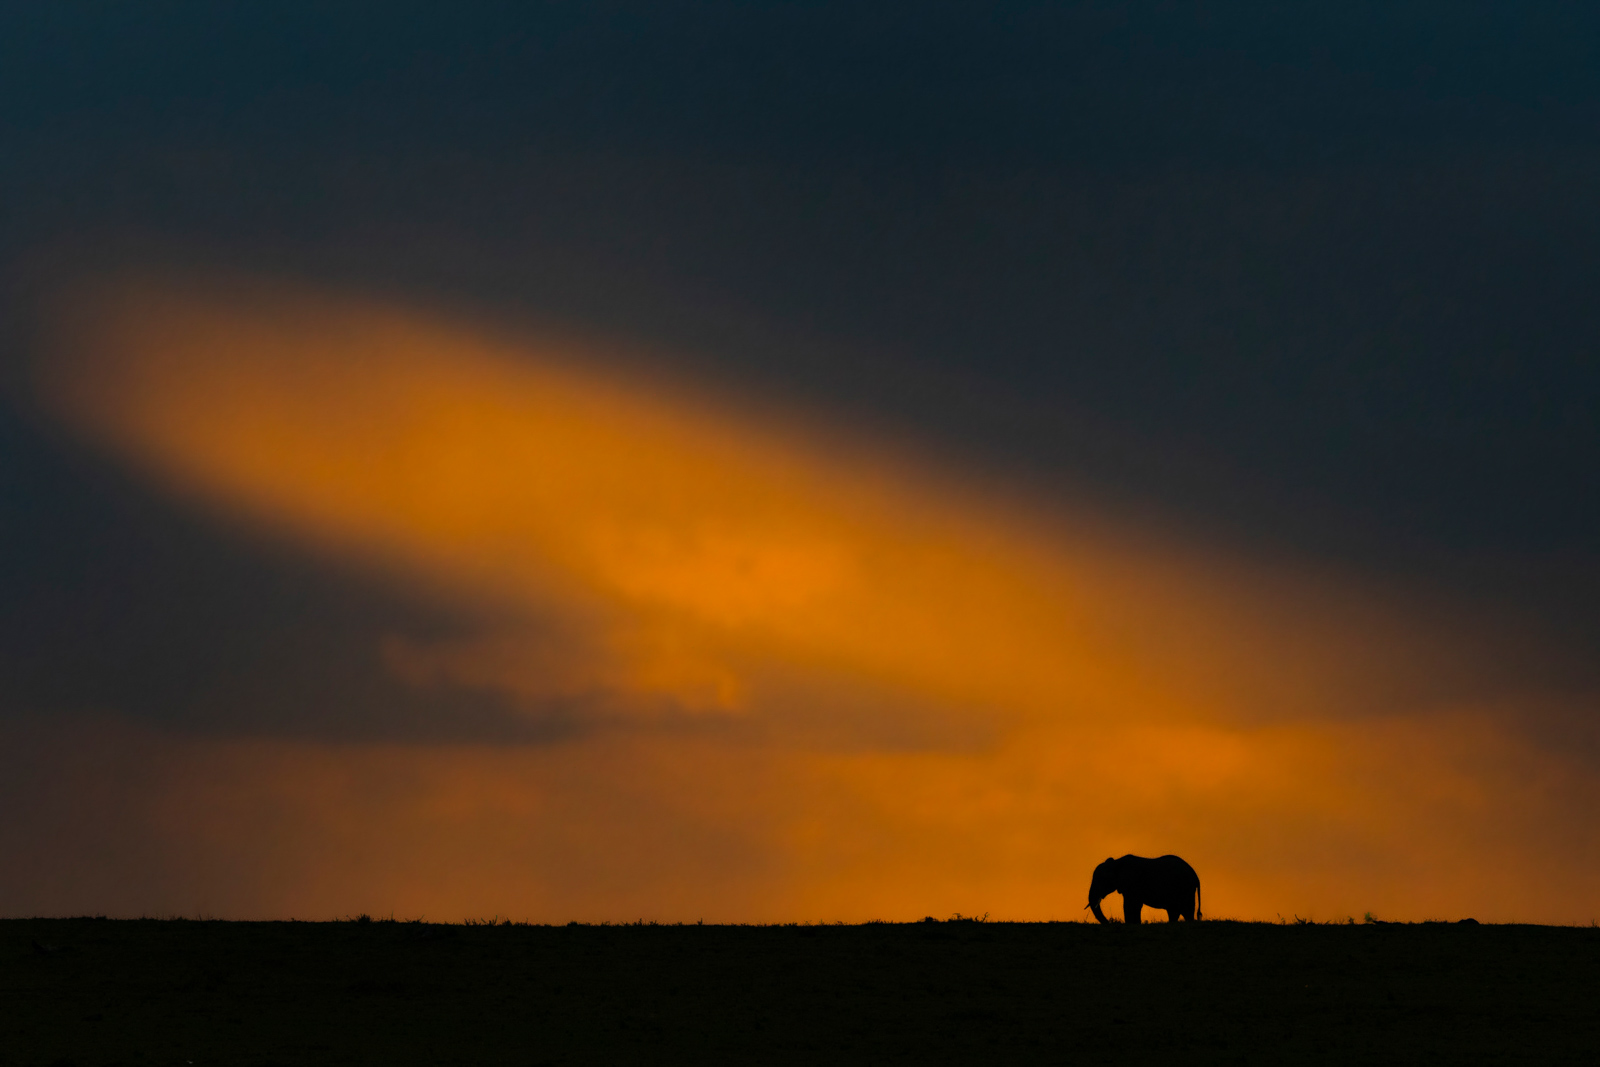 Elephant in african landscape